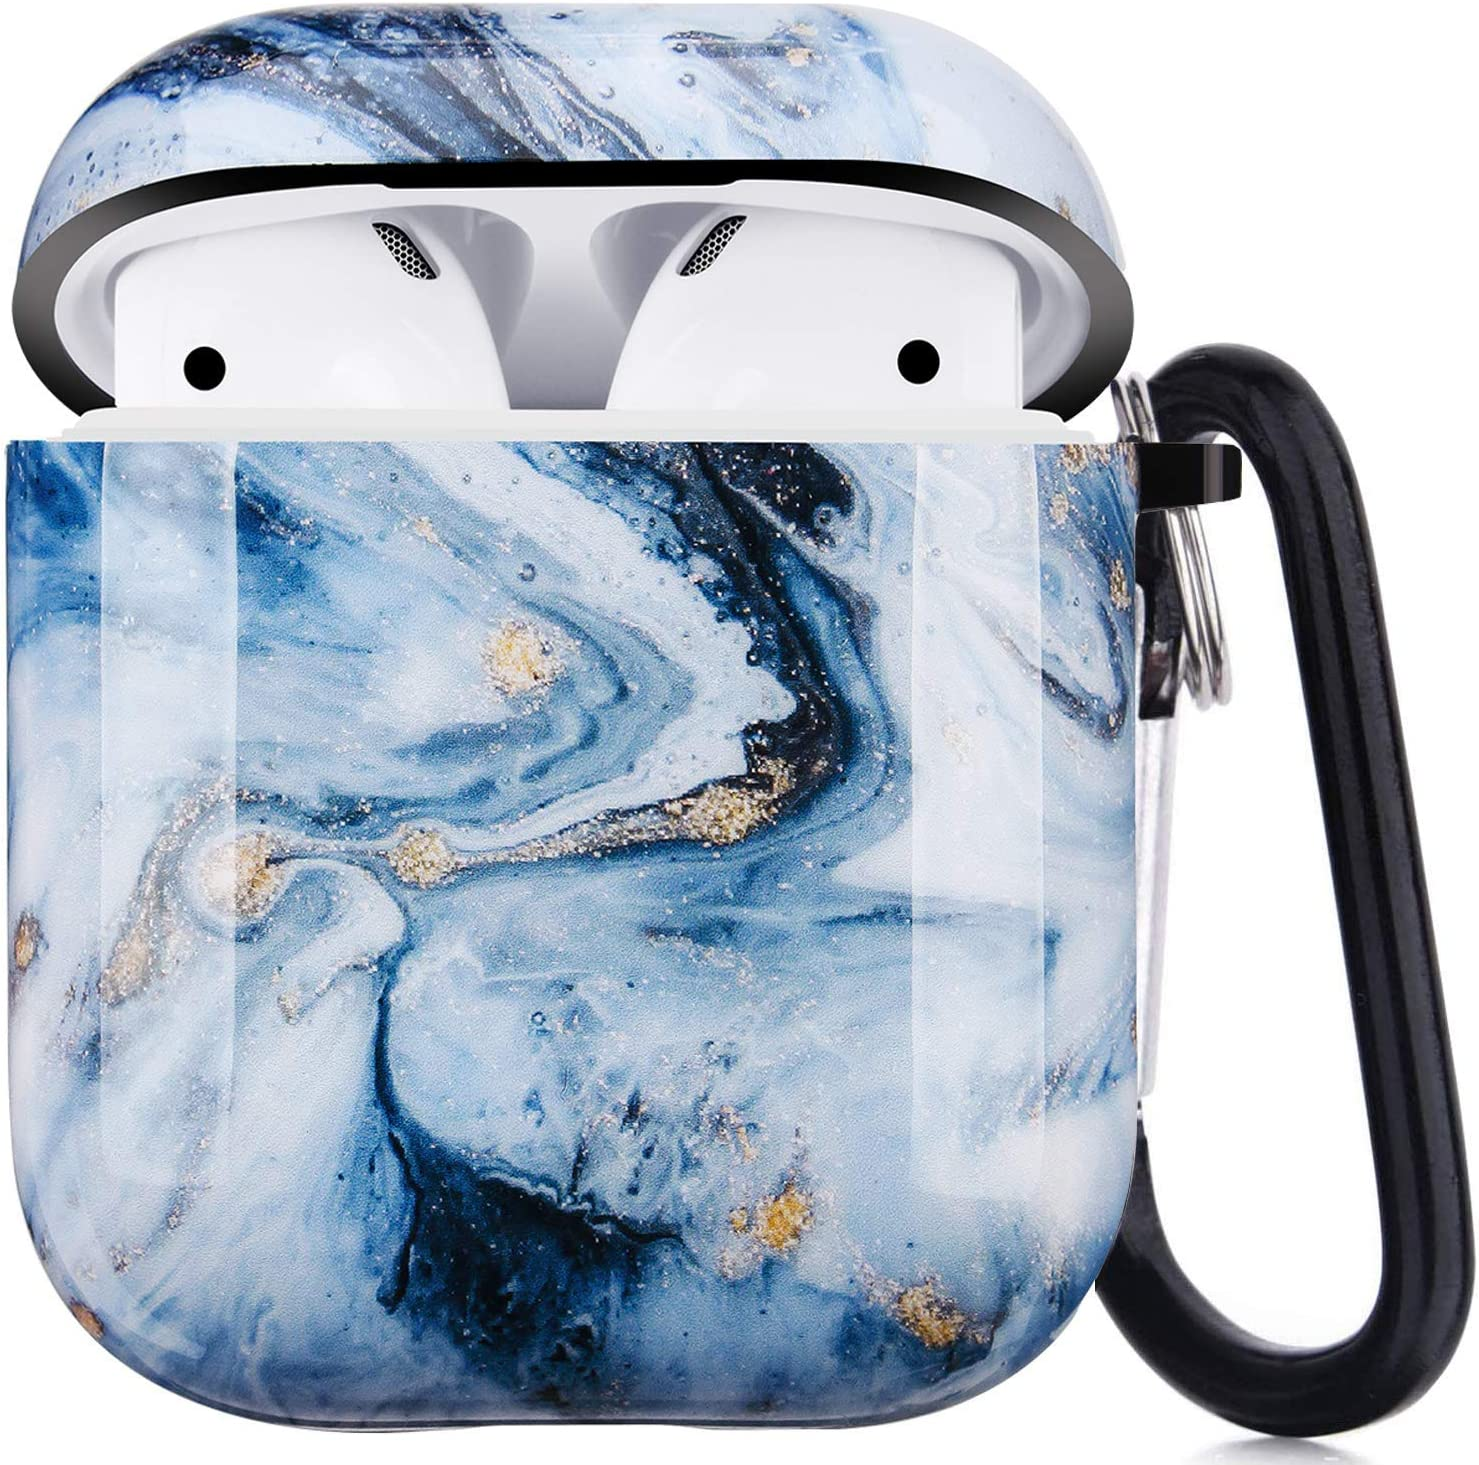 Airpods Case - LitoDream Cute Marble Protective Hard Case Cover Skin Portable & Shockproof Women Girls with Keychain for Apple Airpods 2/1 Charging Case (Blue Marble)